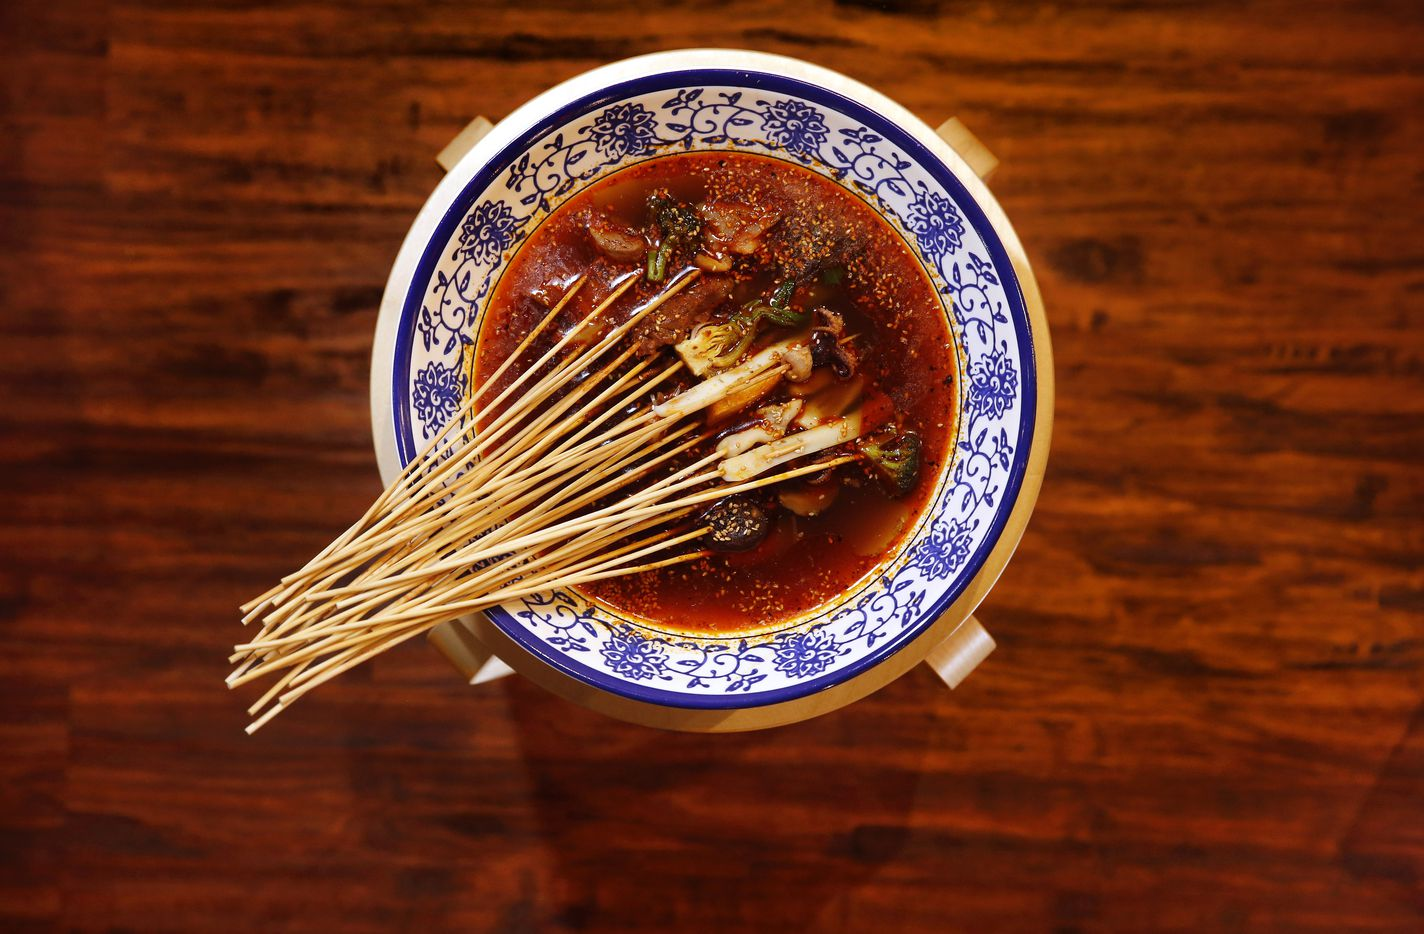 Skewered meats and seafood are served in a large bowl of spicy chicken broth with Sichuan pepper at Chuan Chuan Boiled Skewer Restaurant in Plano.  (Tom Fox/Staff Photographer)